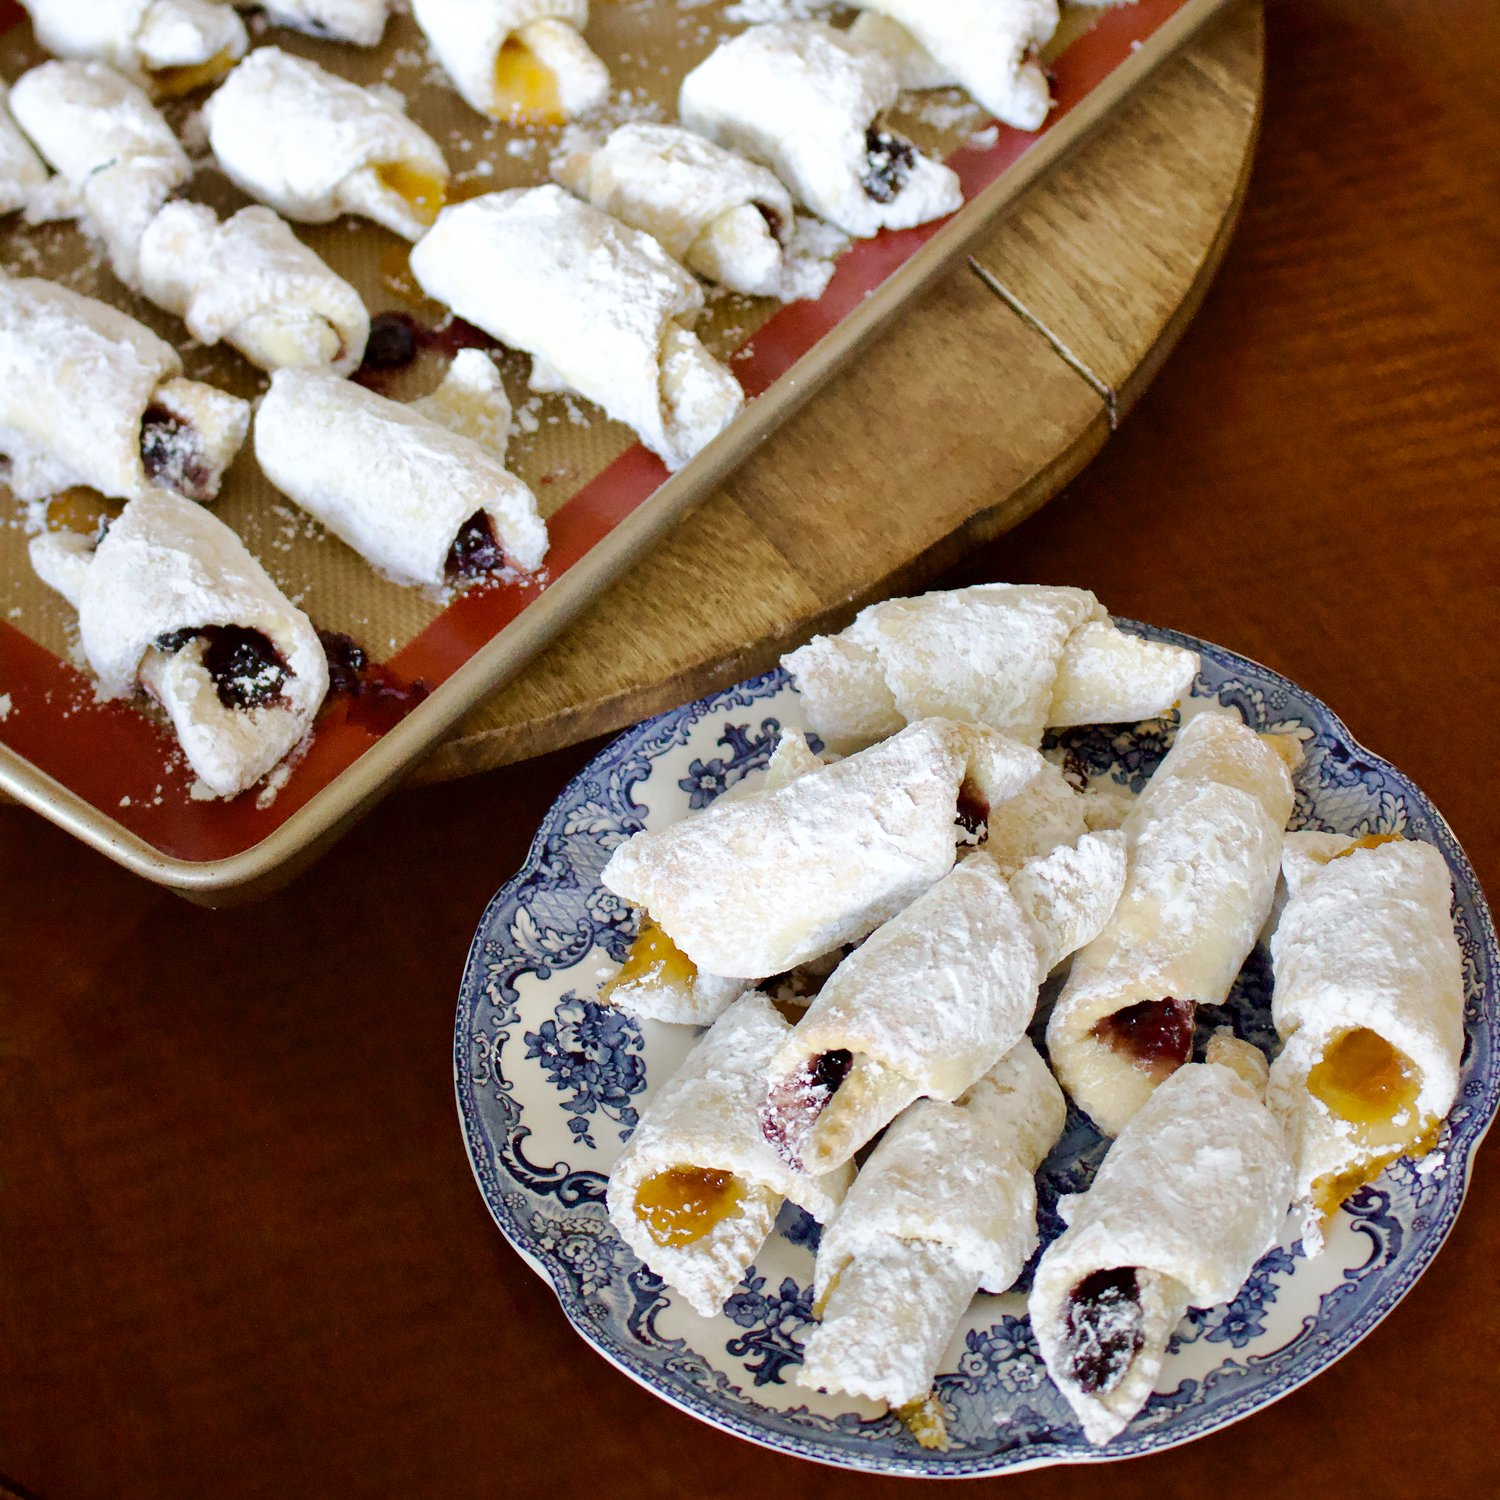 Jam Crescent Pastries(Cornulete cu gem)- is an old Eastern European popular recipe for crescent cookies filled with jam, walnuts or Turkish delight.